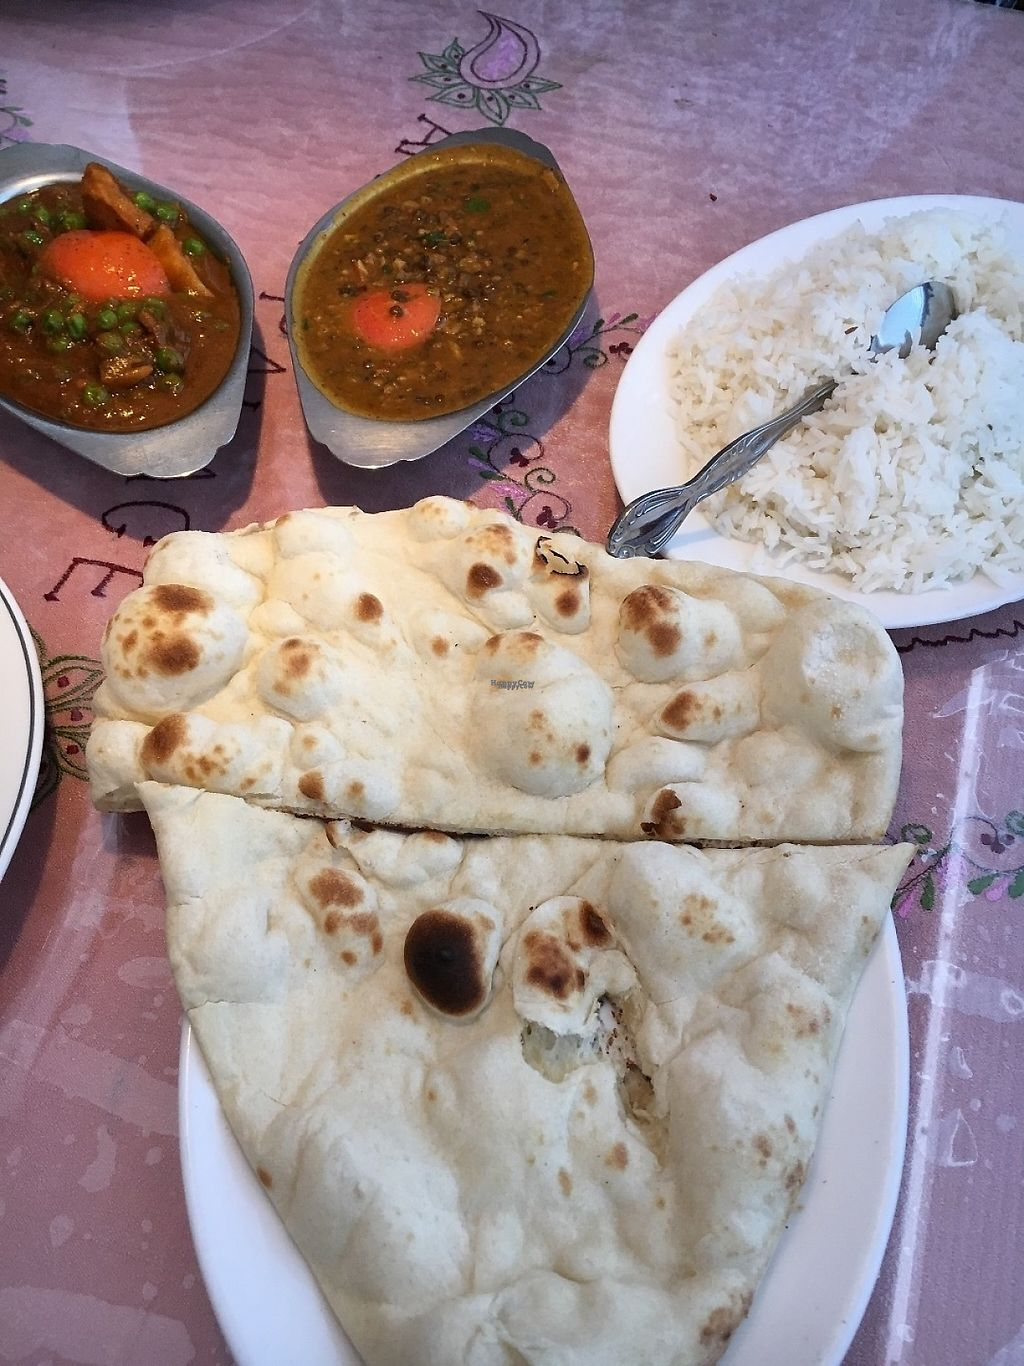 """Photo of Amrit Palace Indian Restaurant  by <a href=""""/members/profile/KWdaddio"""">KWdaddio</a> <br/>Aloo Matar Tamatar and Dal with (2) halves of Nan bread and white rice - Lunch Menu <br/> January 12, 2017  - <a href='/contact/abuse/image/6510/211544'>Report</a>"""